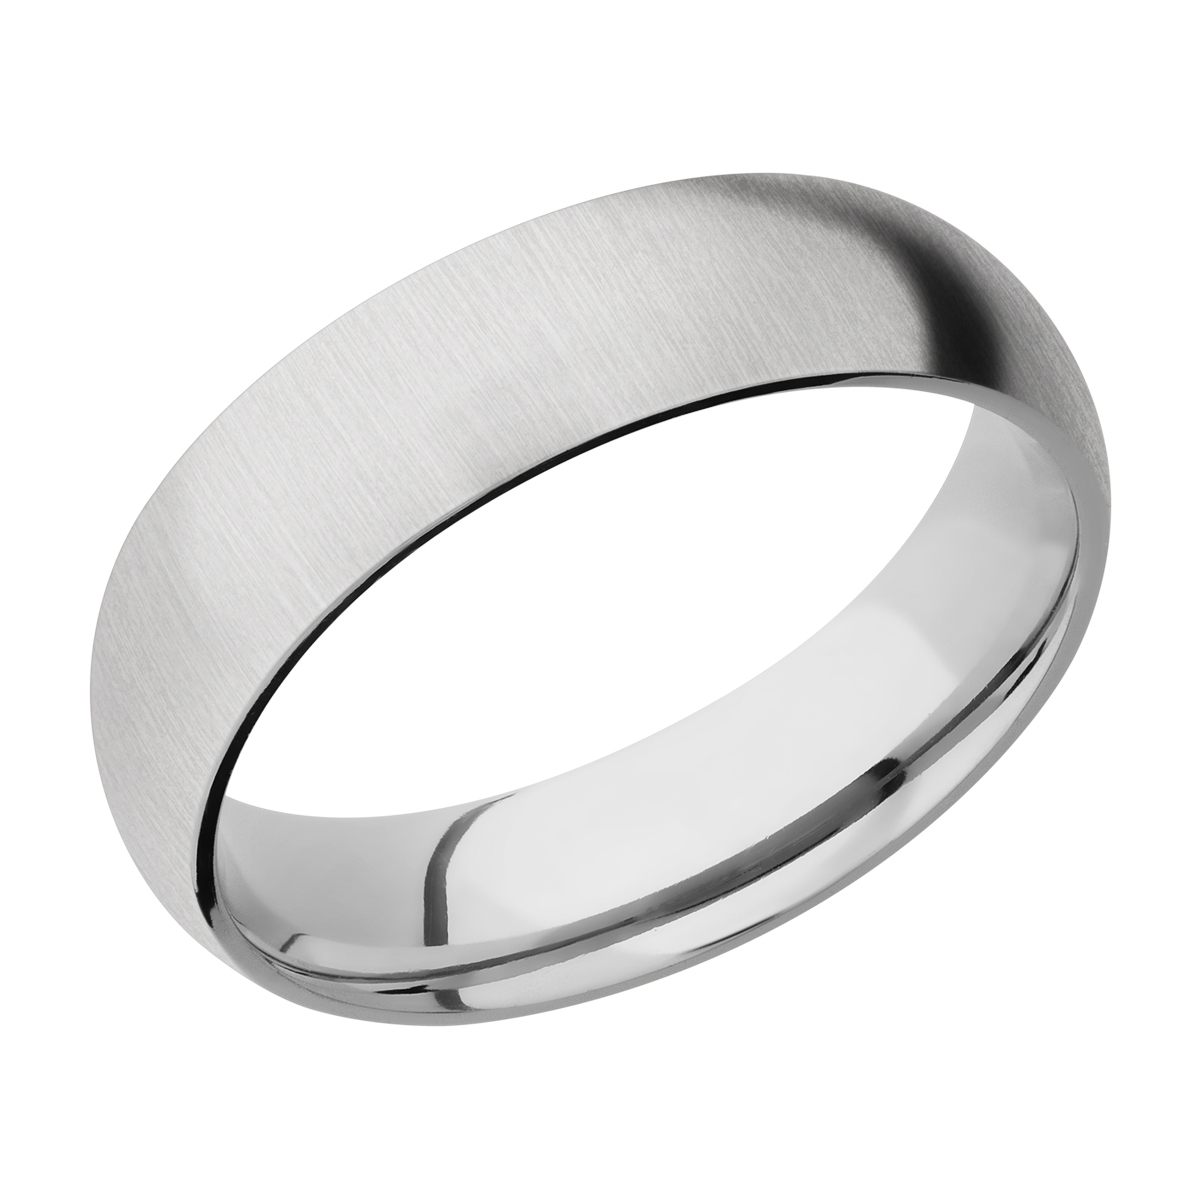 diamond men cobalt tq band benchmark inlay wedding by rings parma for with products graphite